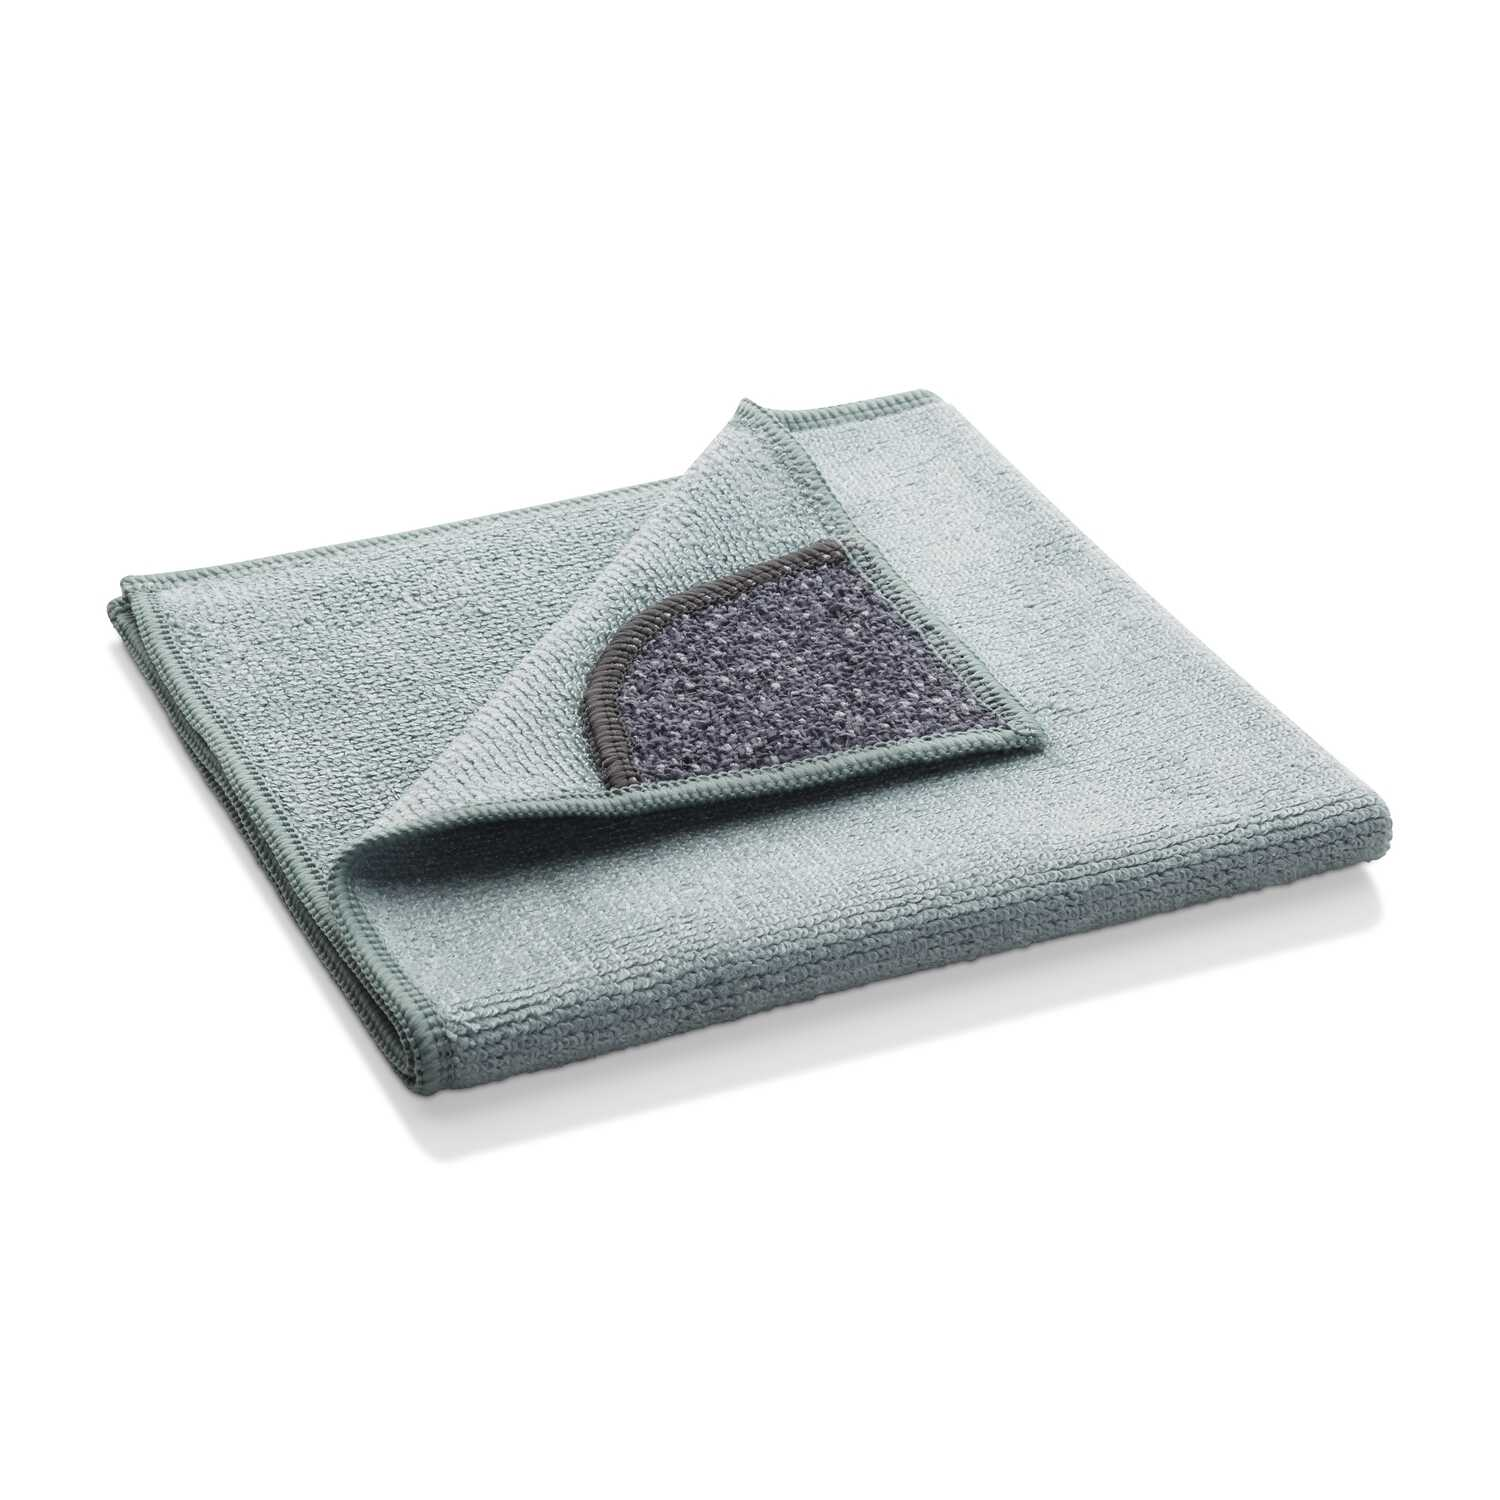 E-Cloth  Kitchen  Polyamide/Polyester  Cleaning Cloth  1 pk